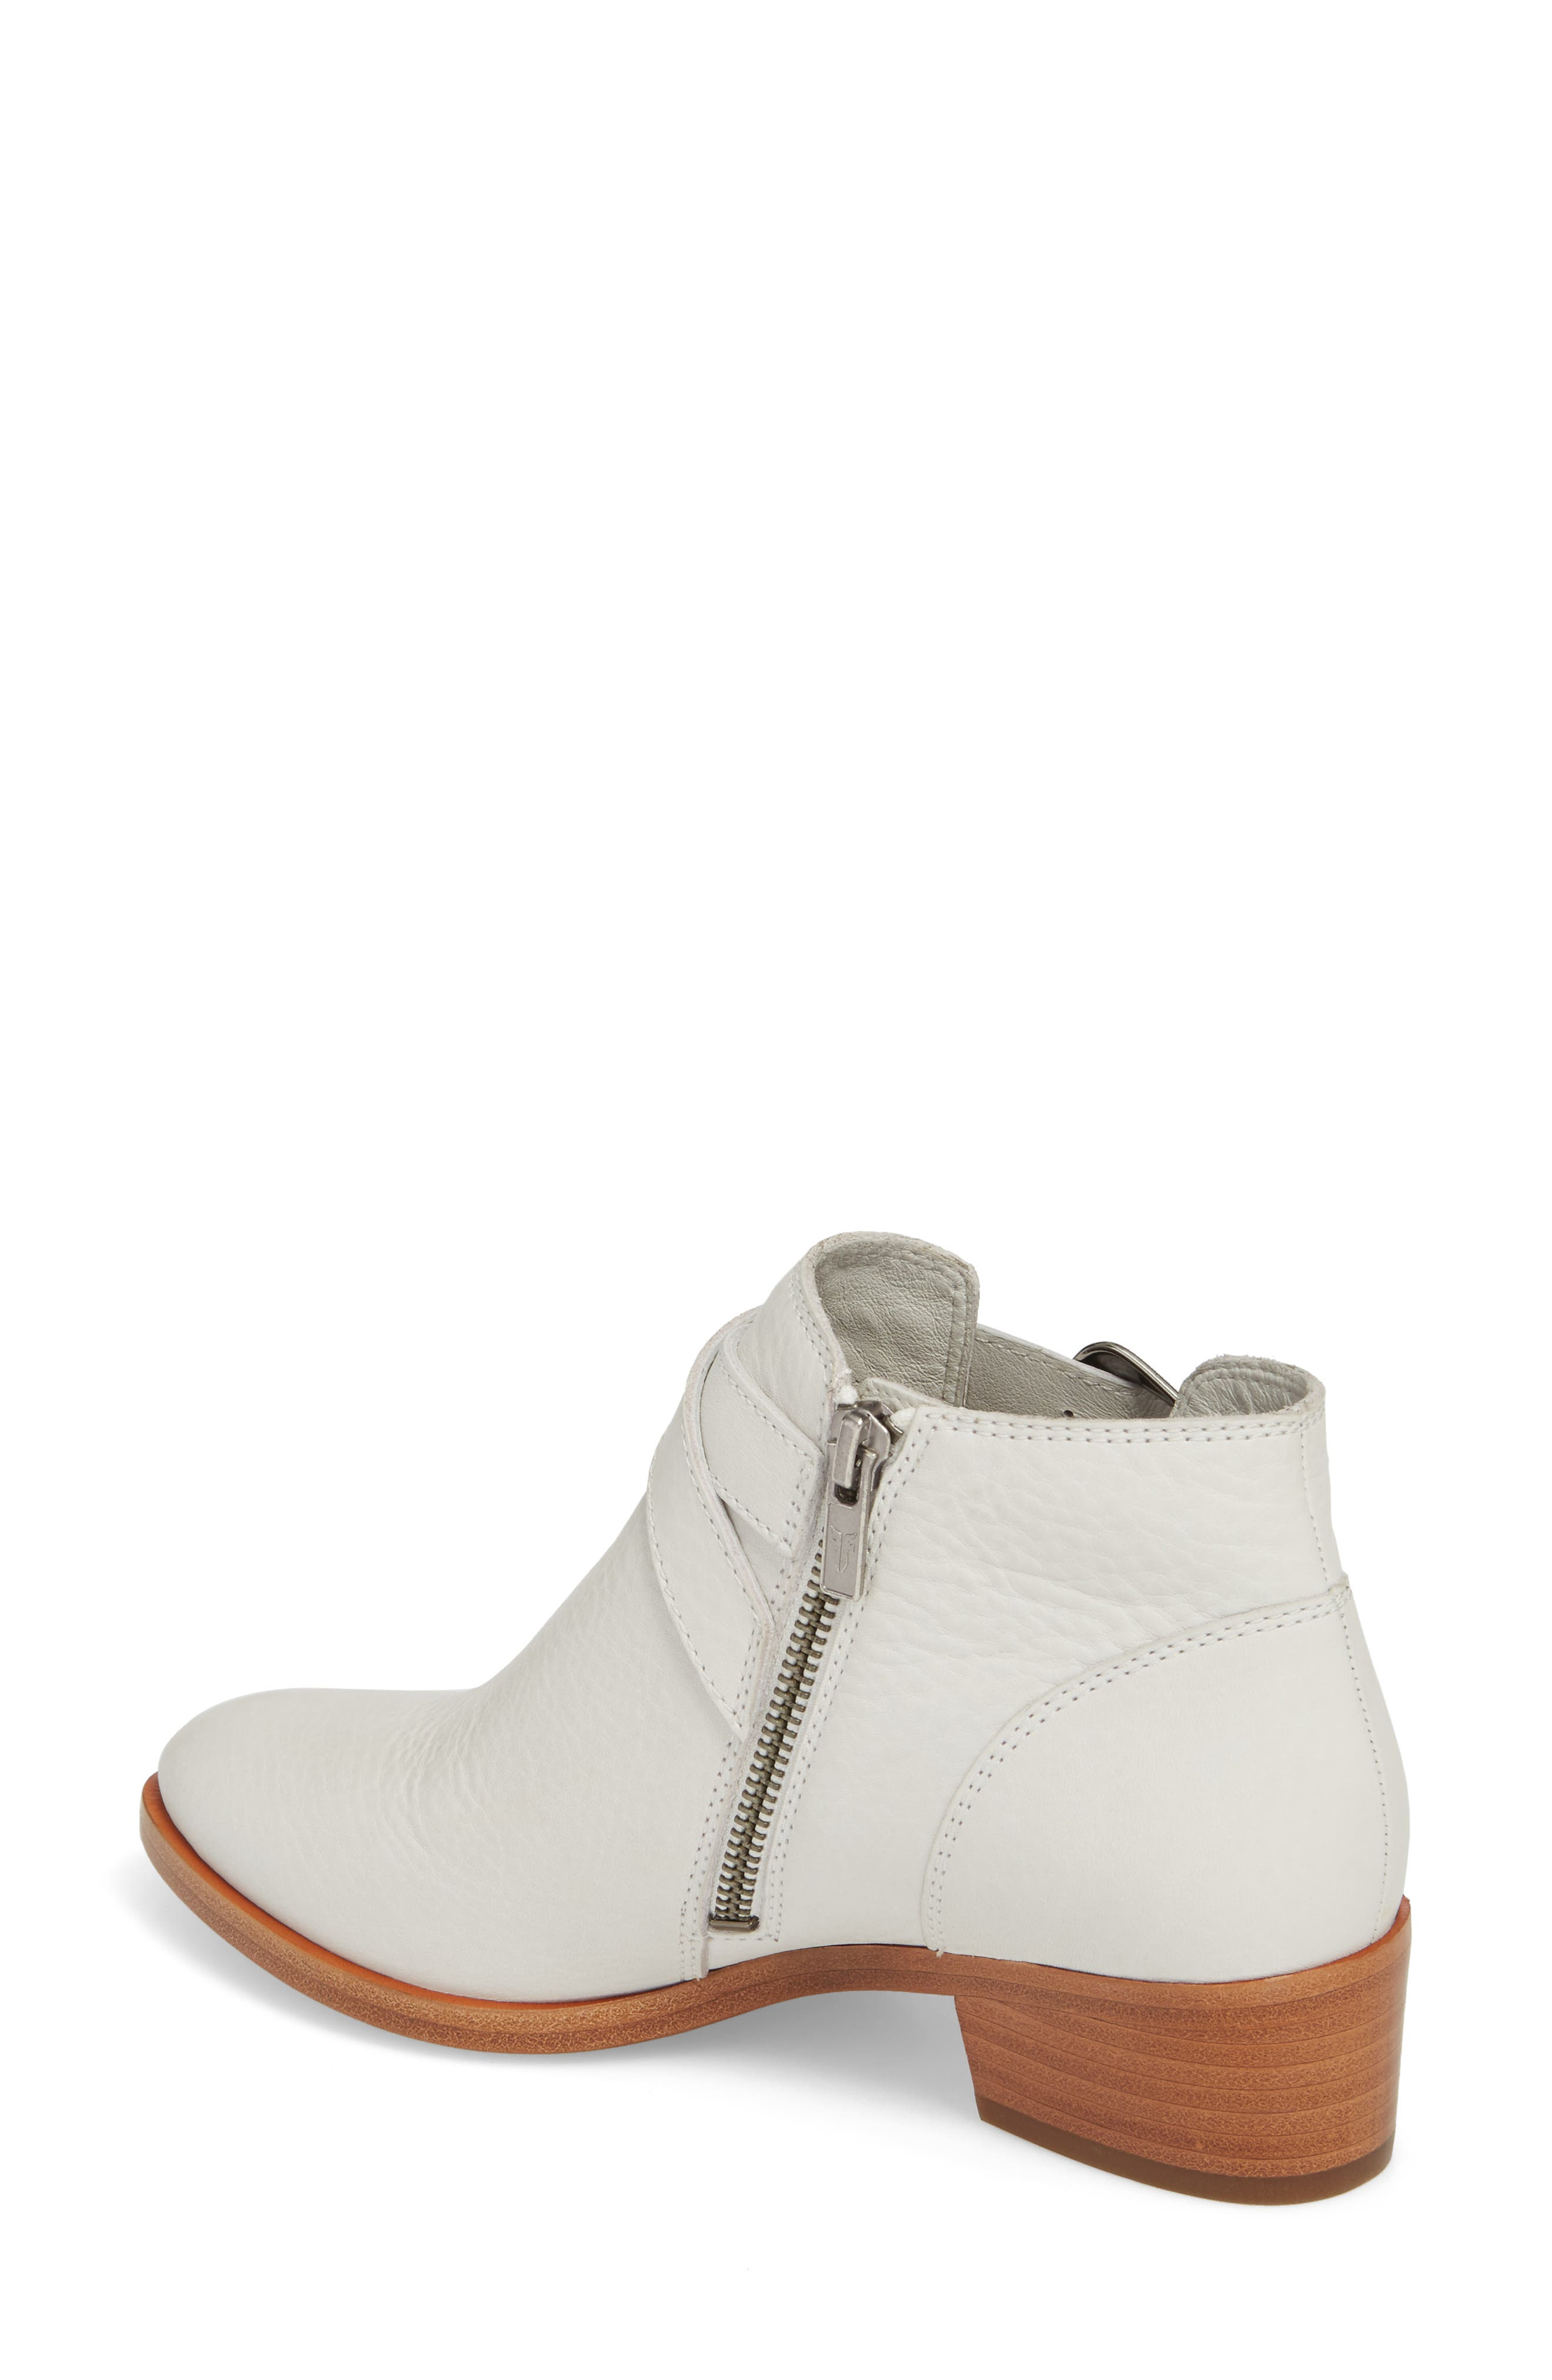 Ray Western Bootie,                             Alternate thumbnail 2, color,                             White/ White Leather